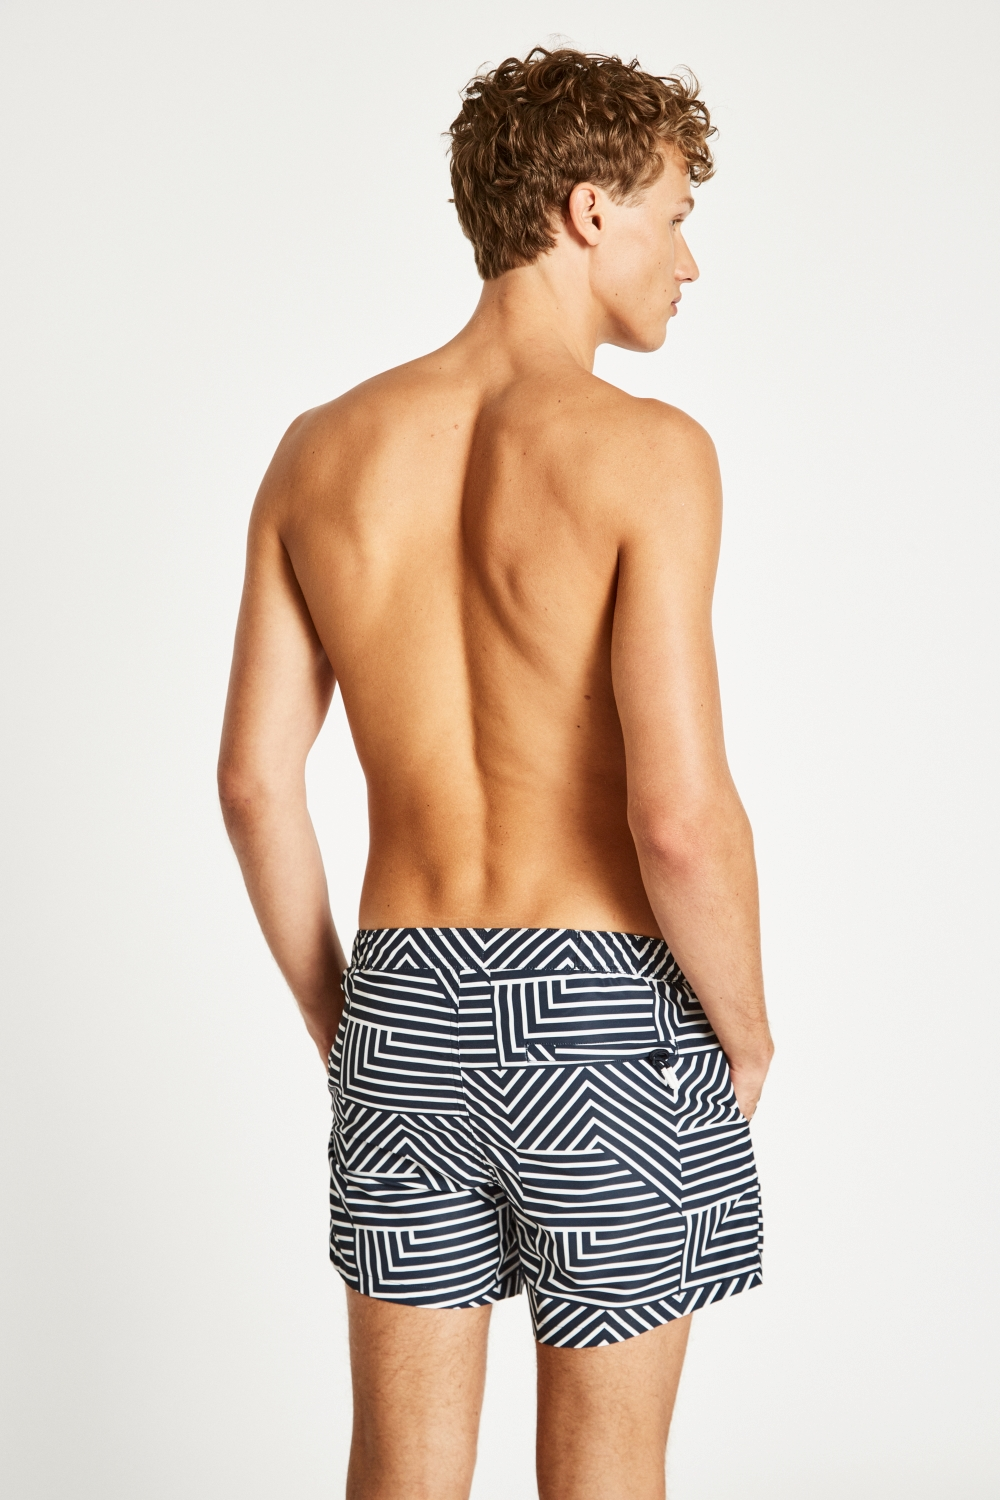 7d029d424b WITTERING TAILORED SWIM SHORTS. £44.95. Sorry, this item has just gone out  of stock. Our stylists will find you something similar if you sign up for  Thread.